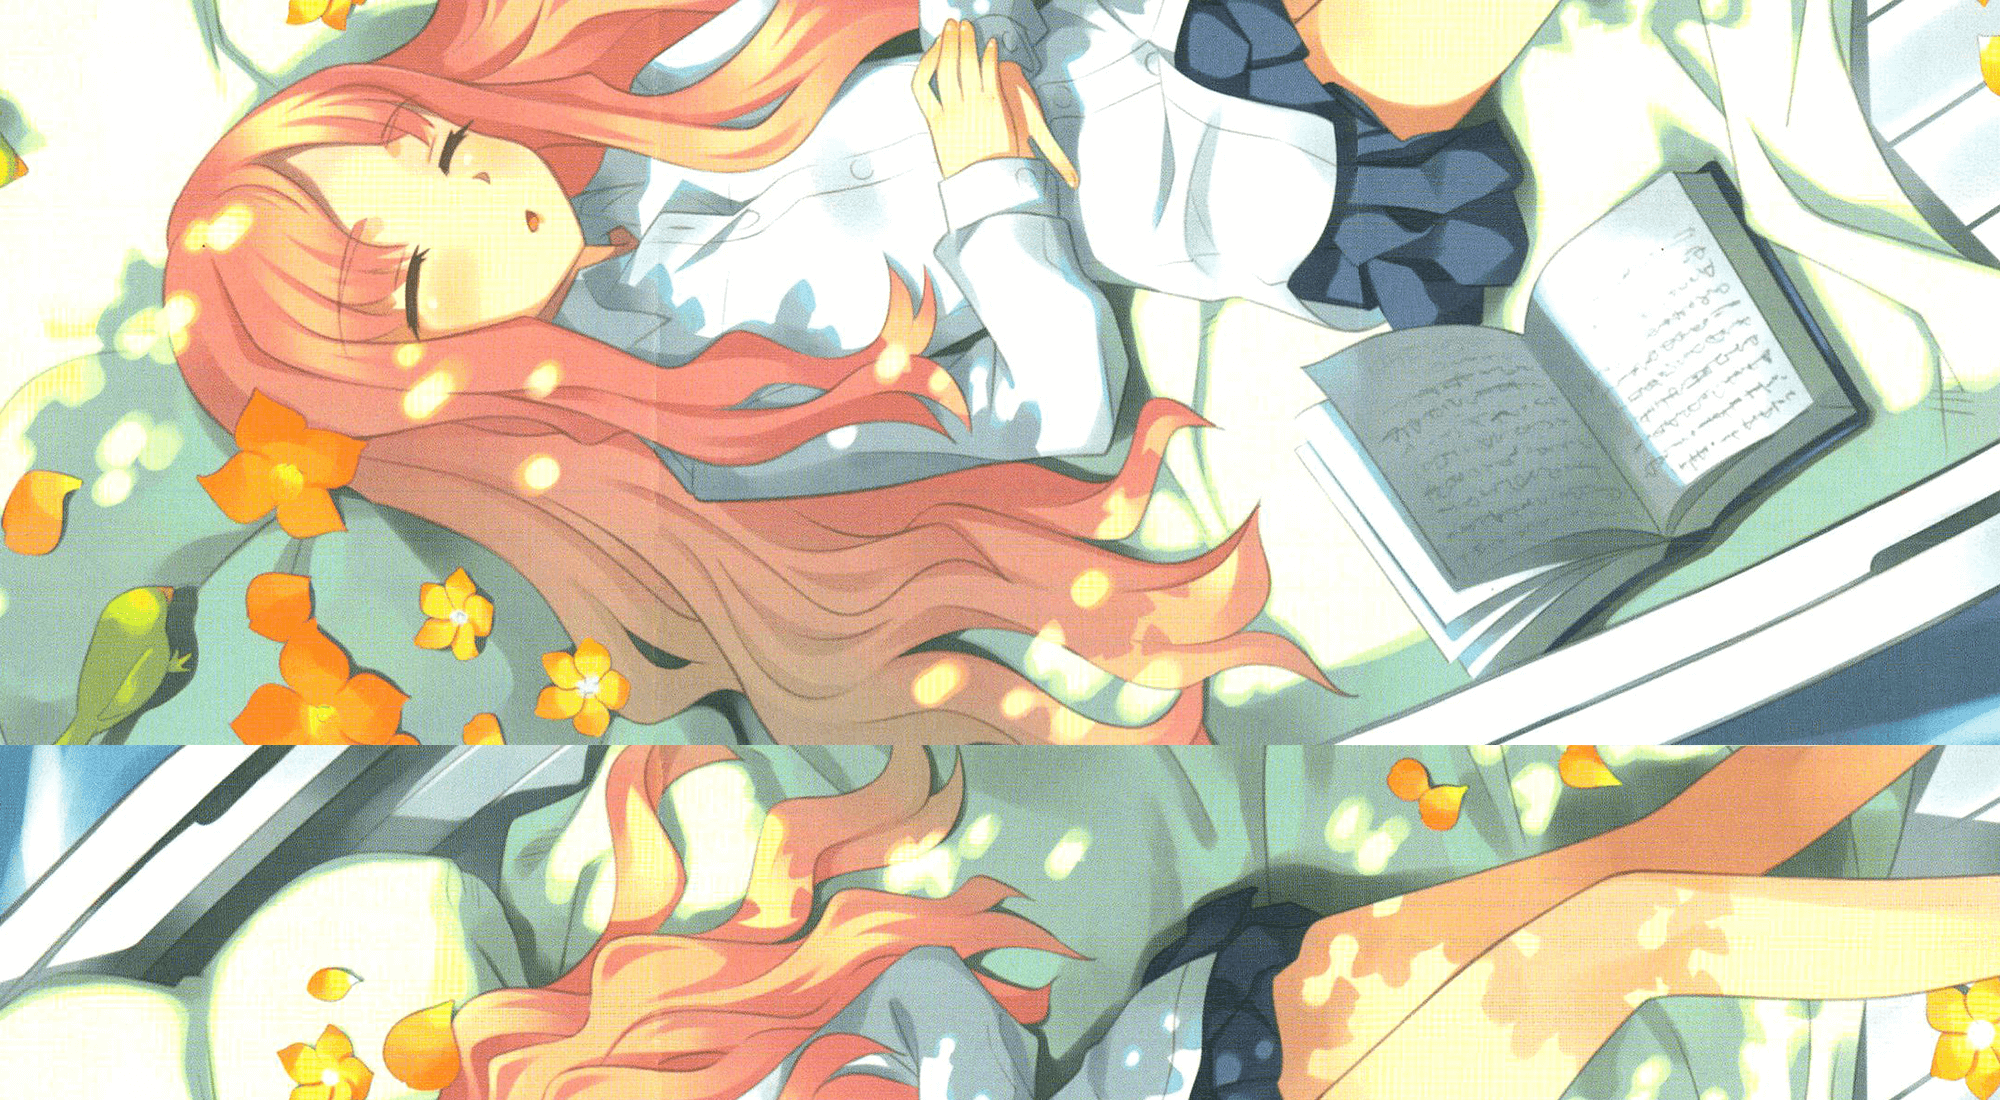 Grisaia no Kajitsu Visual Novel – Retrospective